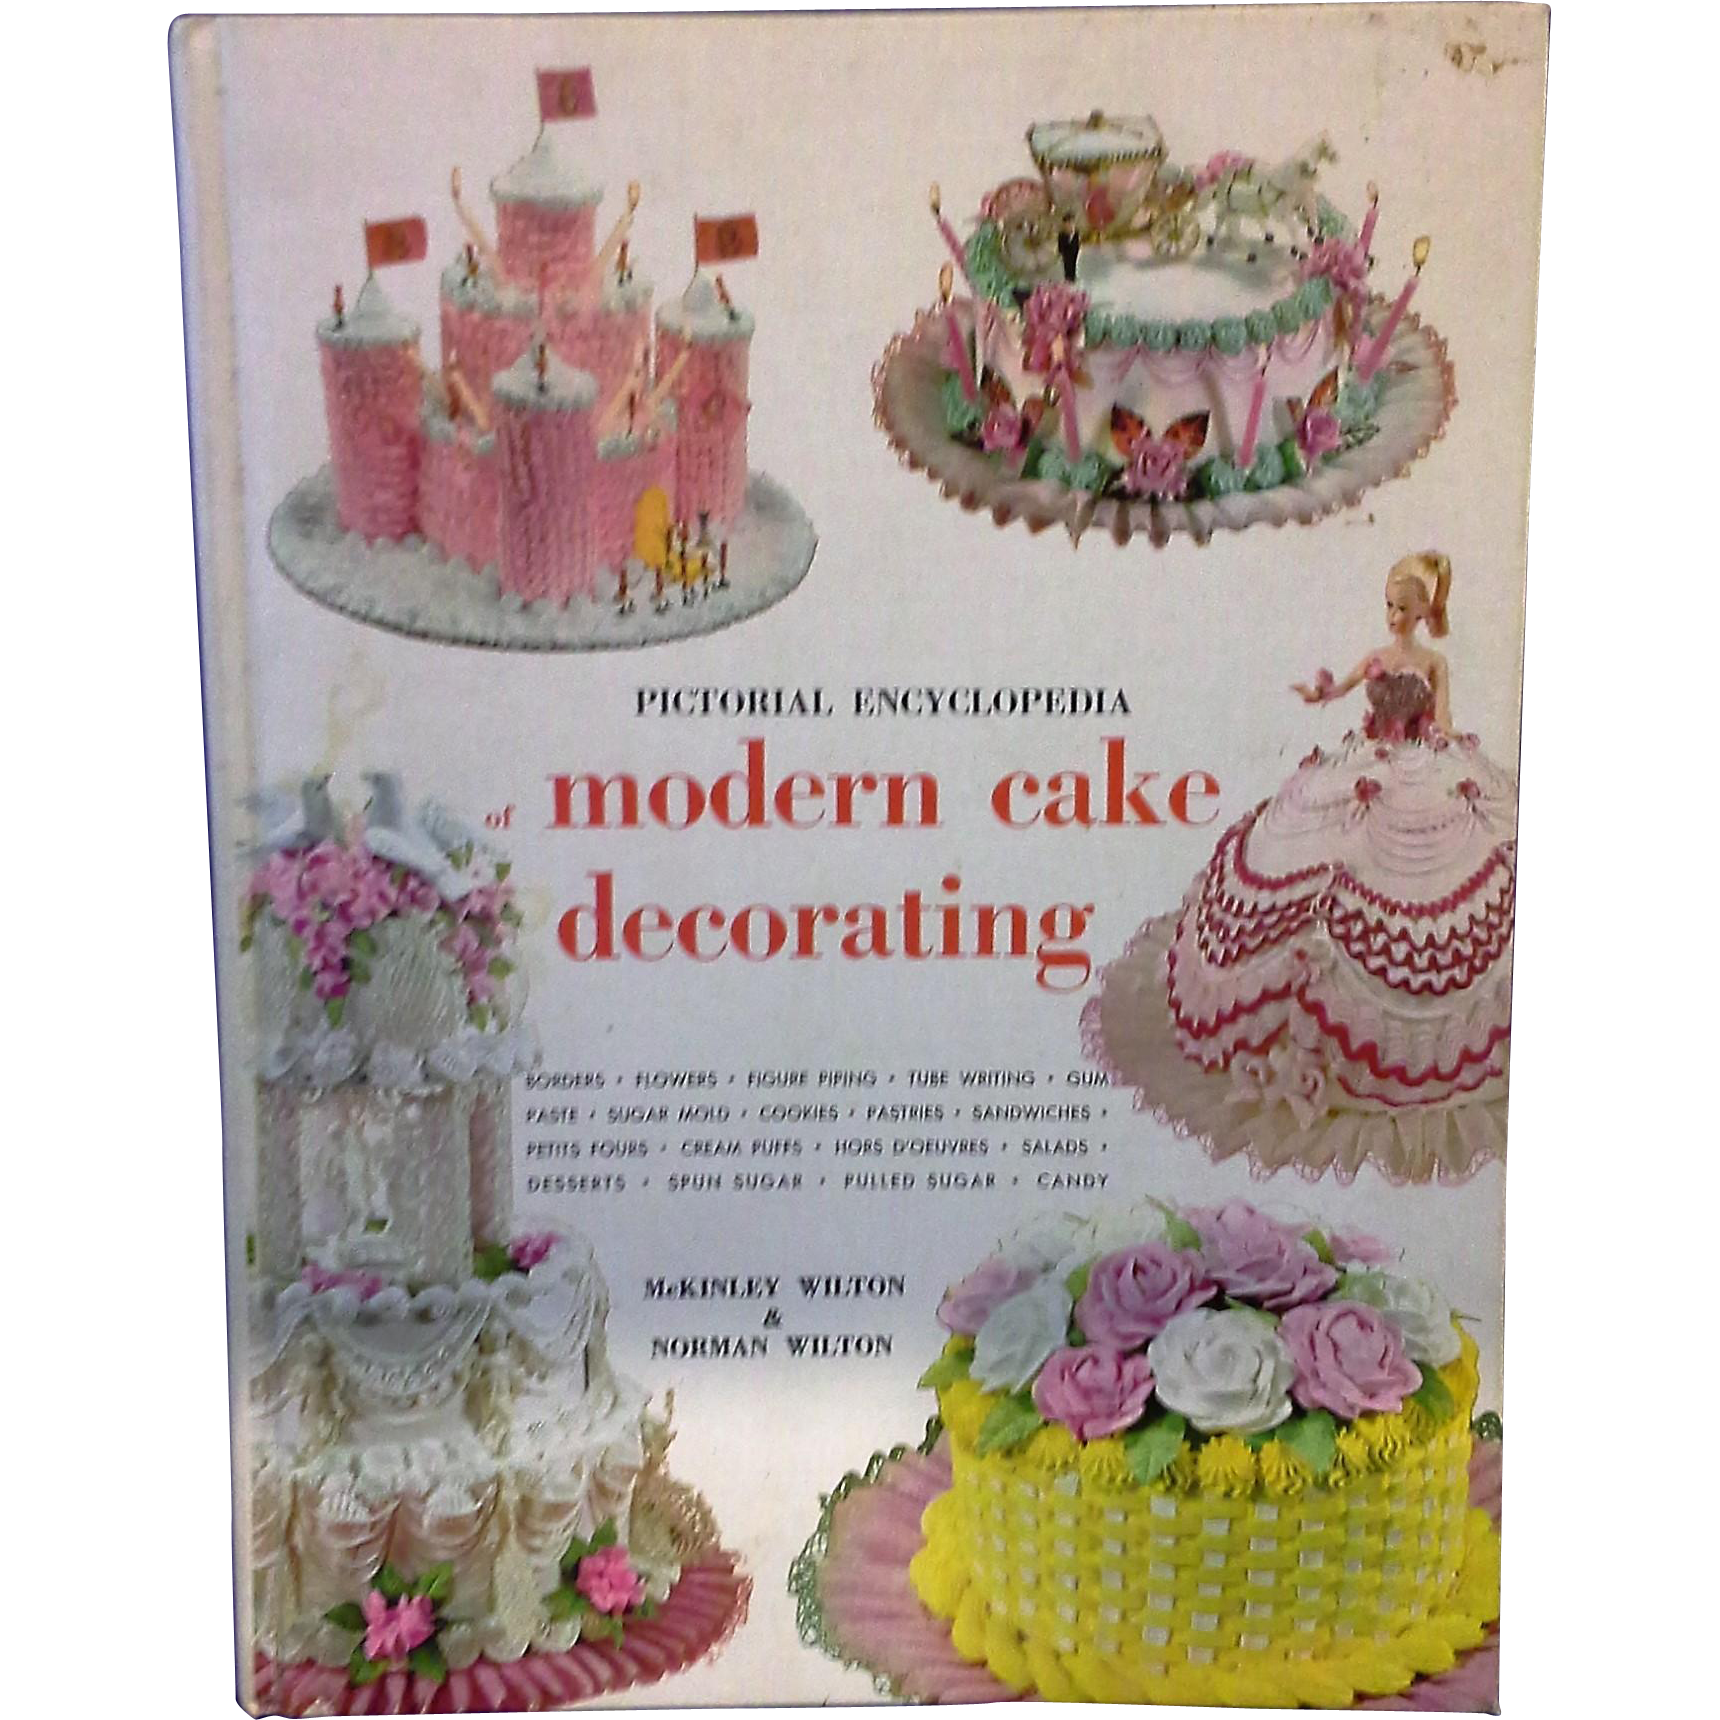 Pictorial Encyclopedia of Modern Cake Decorating 1968 Fifth Edition Mckinley Wilton & Norman Wilton